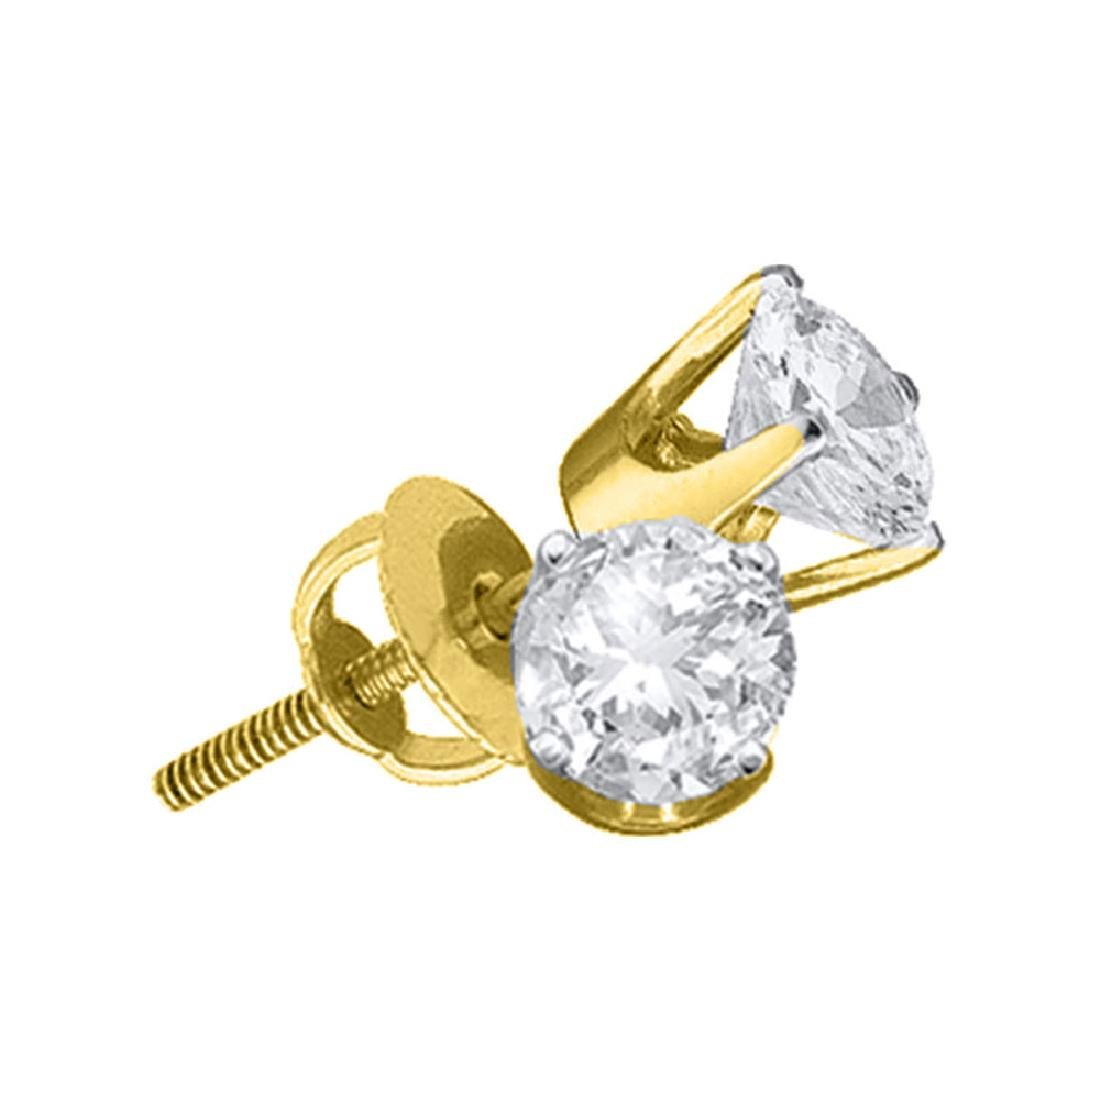 0.38 CTW Diamond Solitaire Stud Earrings 14KT Yellow